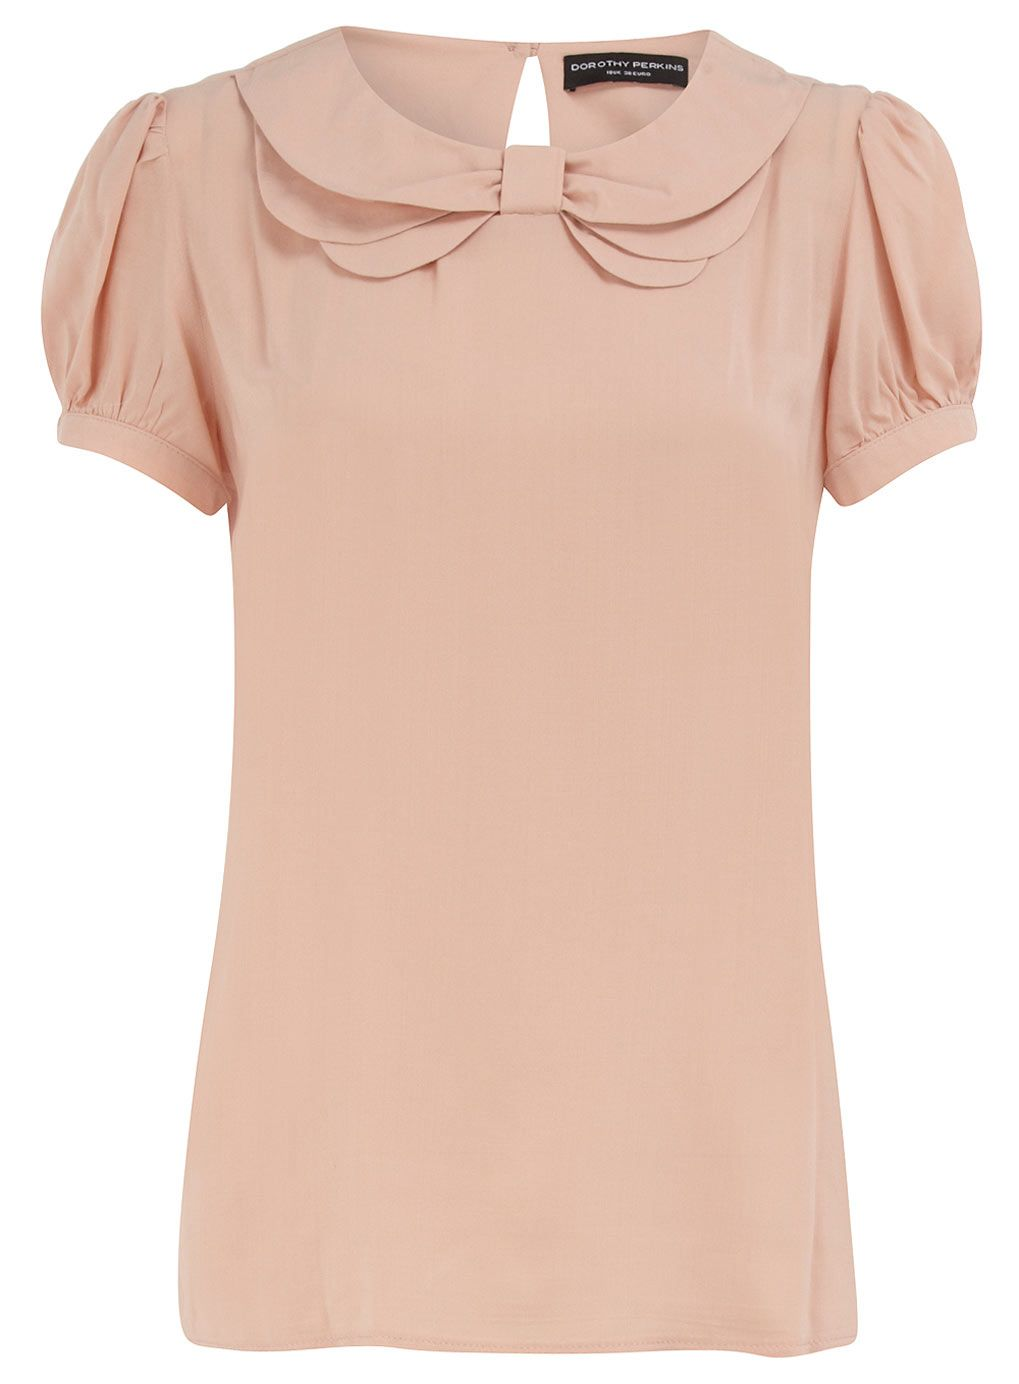 blush bow collar top from Dorothy Perkins